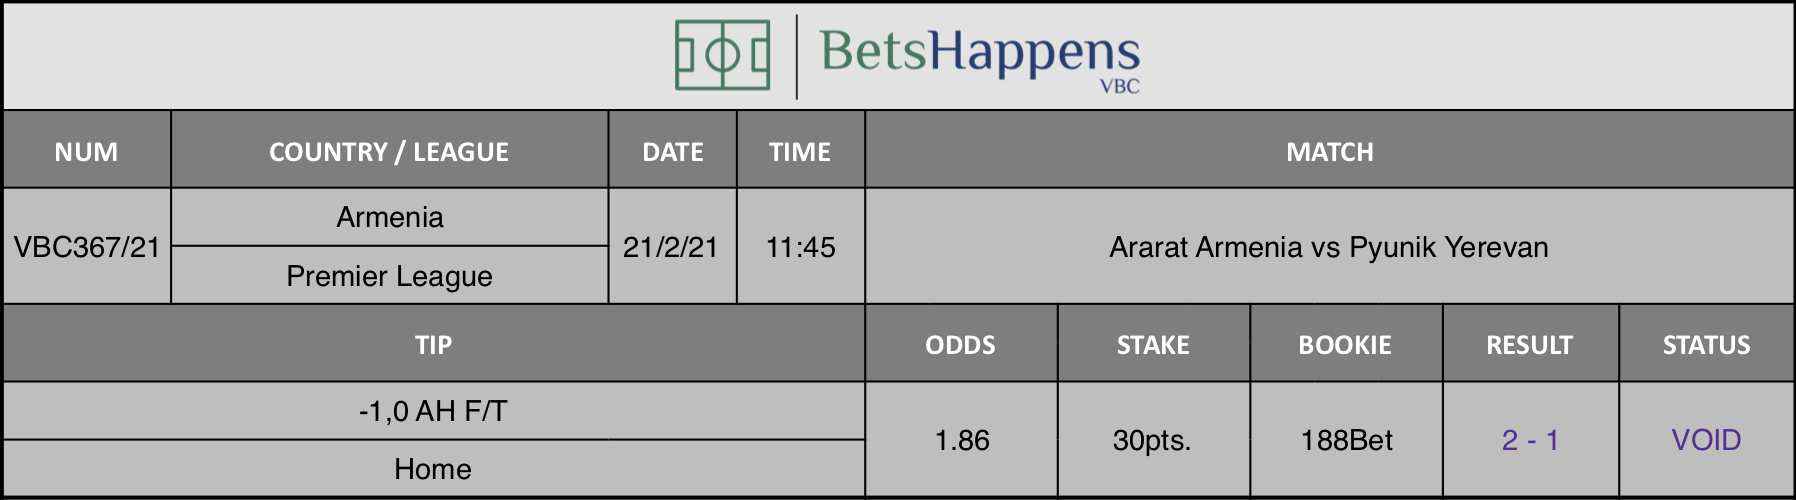 Results of our tip for the Ararat Armenia vs Pyunik Yerevan match where -1 AH F/T Home is recommended.